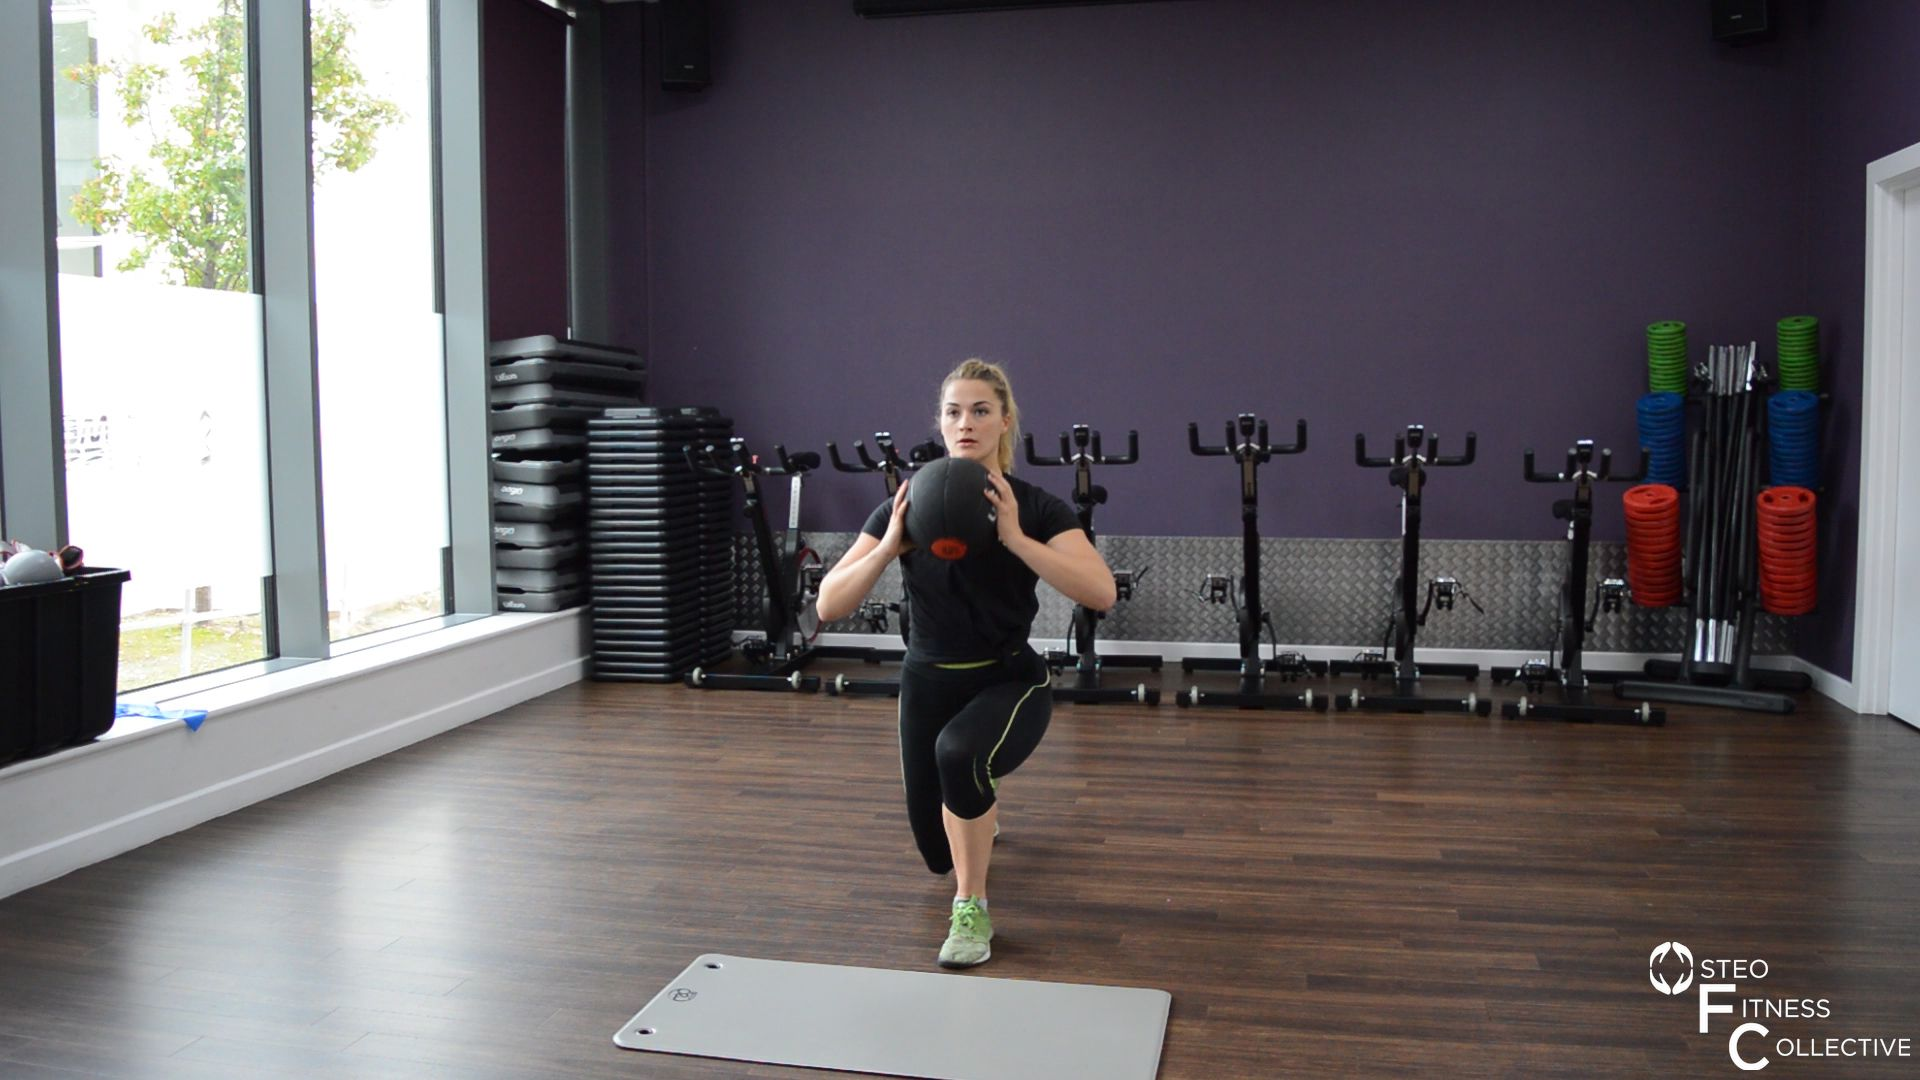 Medicine ball workout, lunge and twist